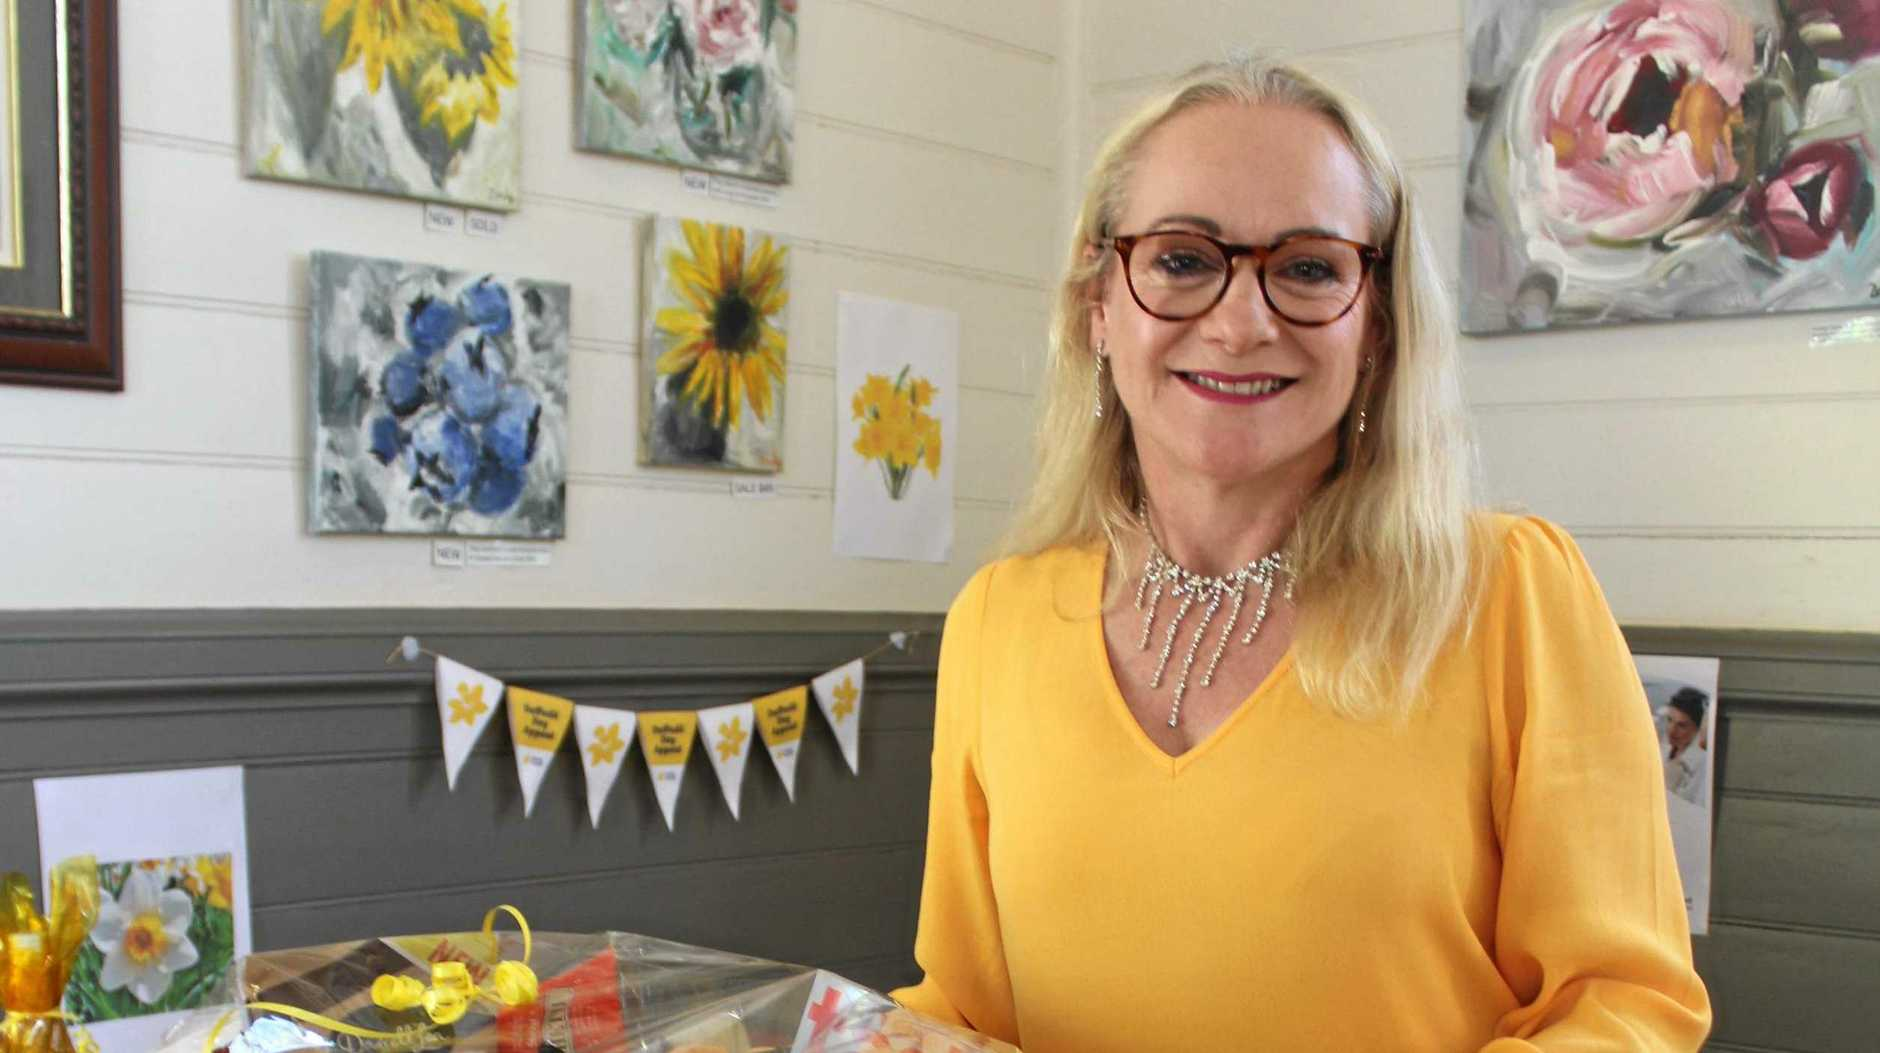 TOP FROCK: Whip Bird building owner Linda Lange rocking a beautiful daffodil coloured frock at the event.